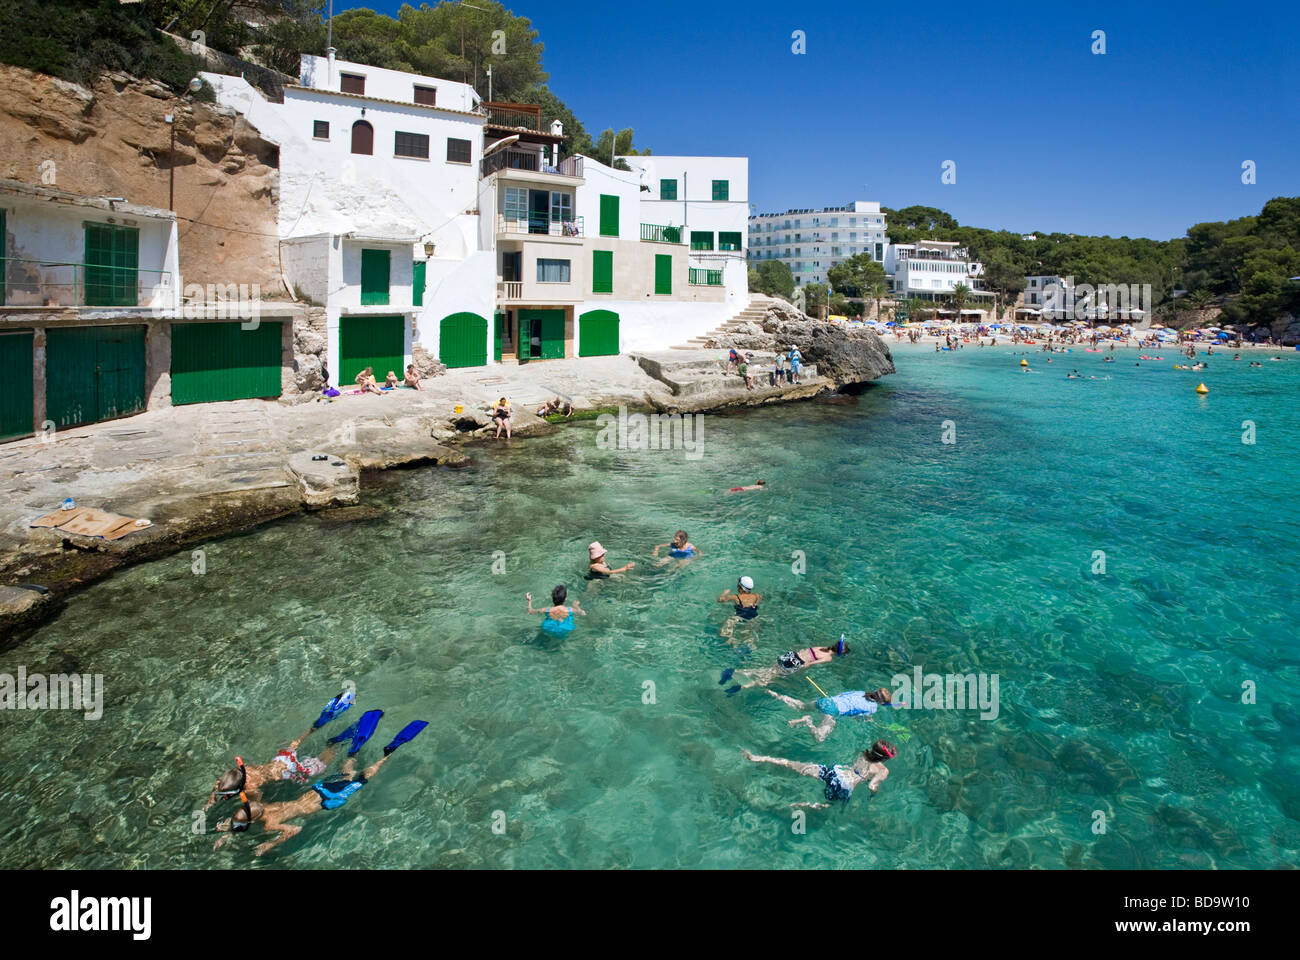 people snorkeling cala santanyi mallorca island spain stock photo 25418092 alamy. Black Bedroom Furniture Sets. Home Design Ideas